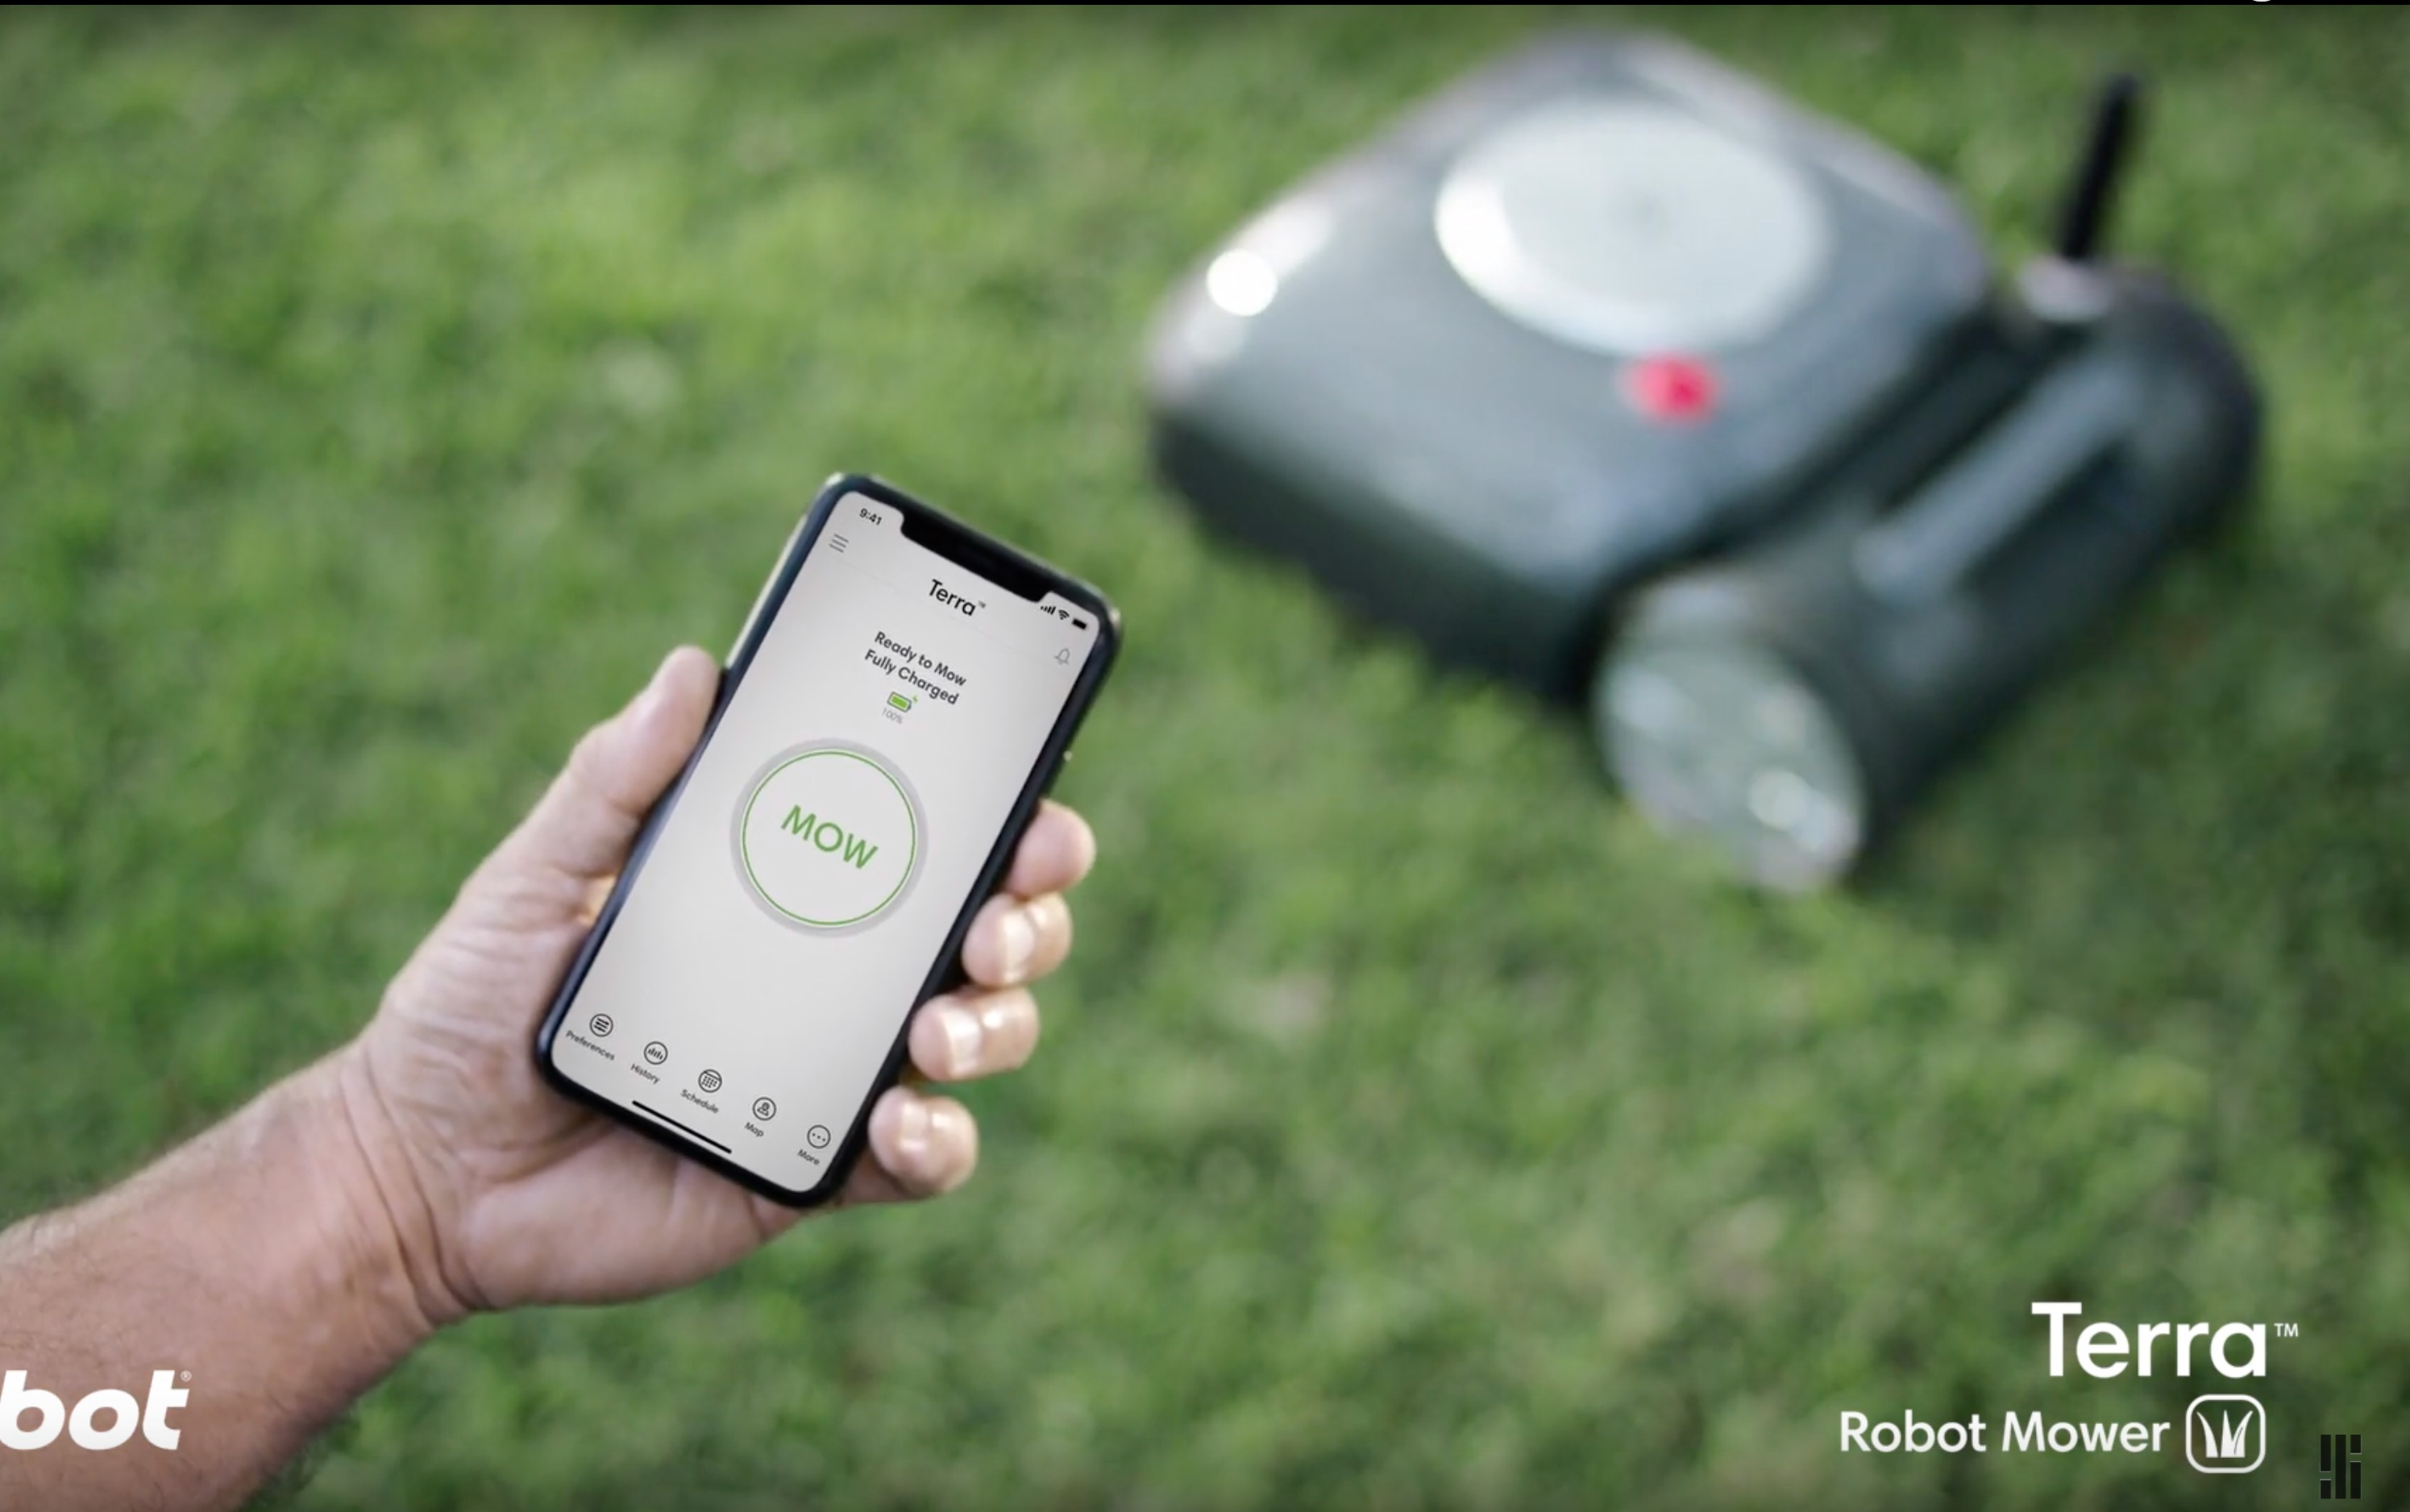 iRobot is going outdoors with an autonomous Roomba lawn